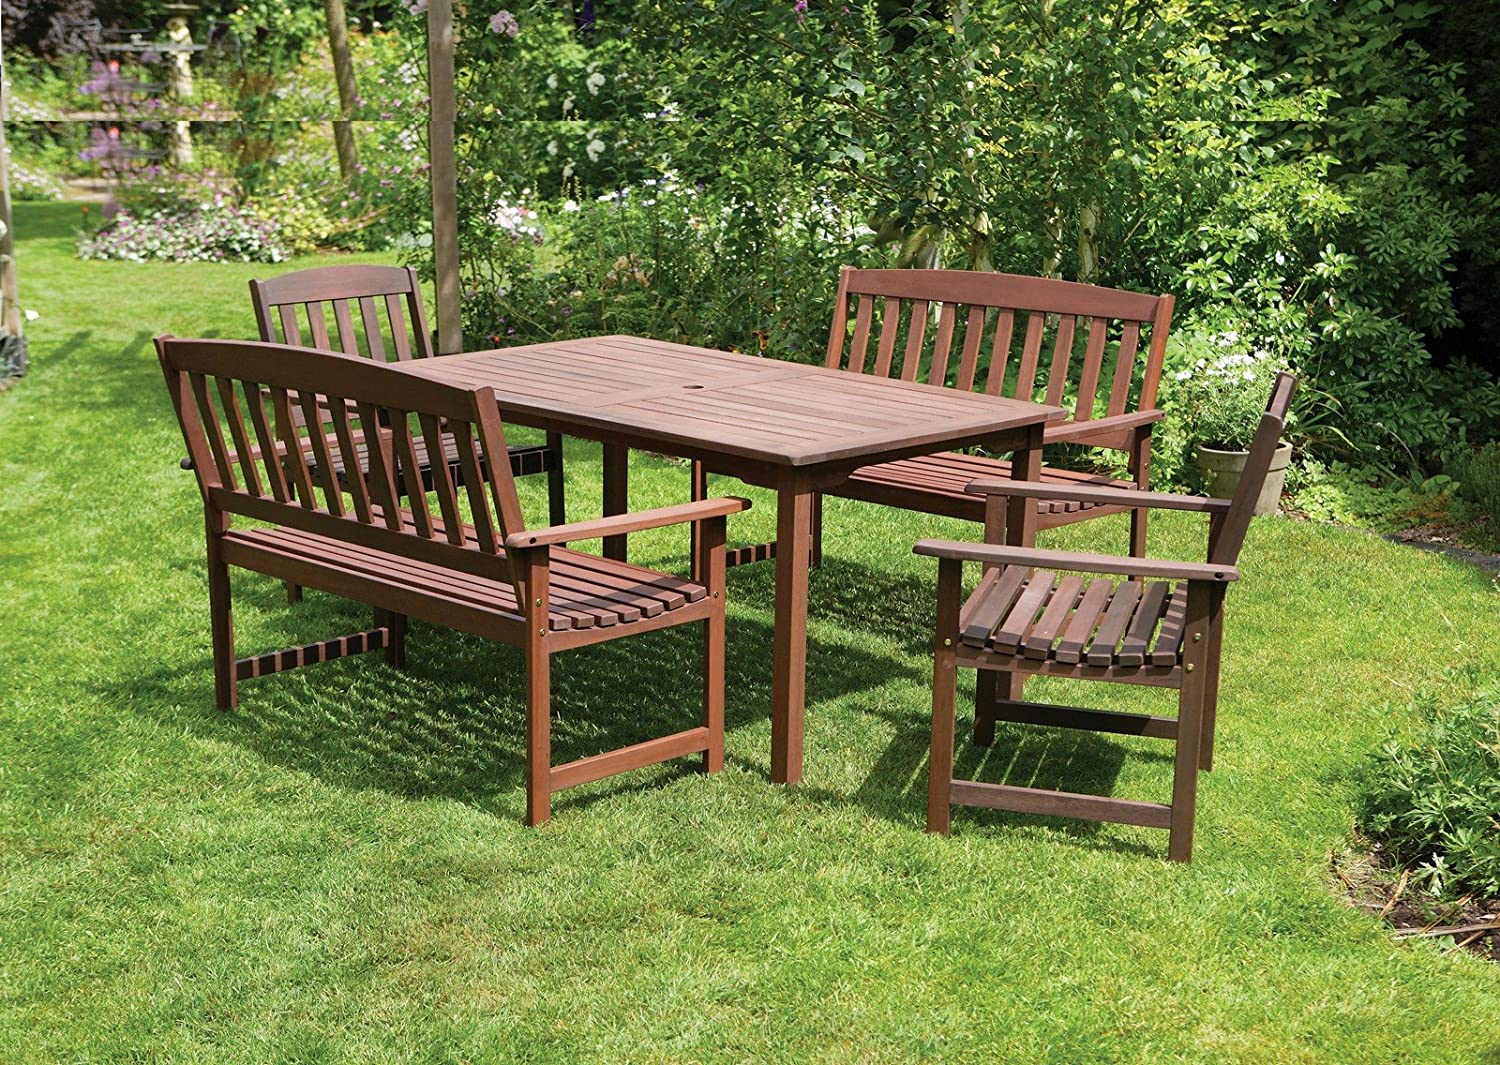 6 seater wooden garden dining set 5 piece 2 x 2 seater garden bench and 2 garden armchairs fsc hardwood amazoncouk garden outdoors